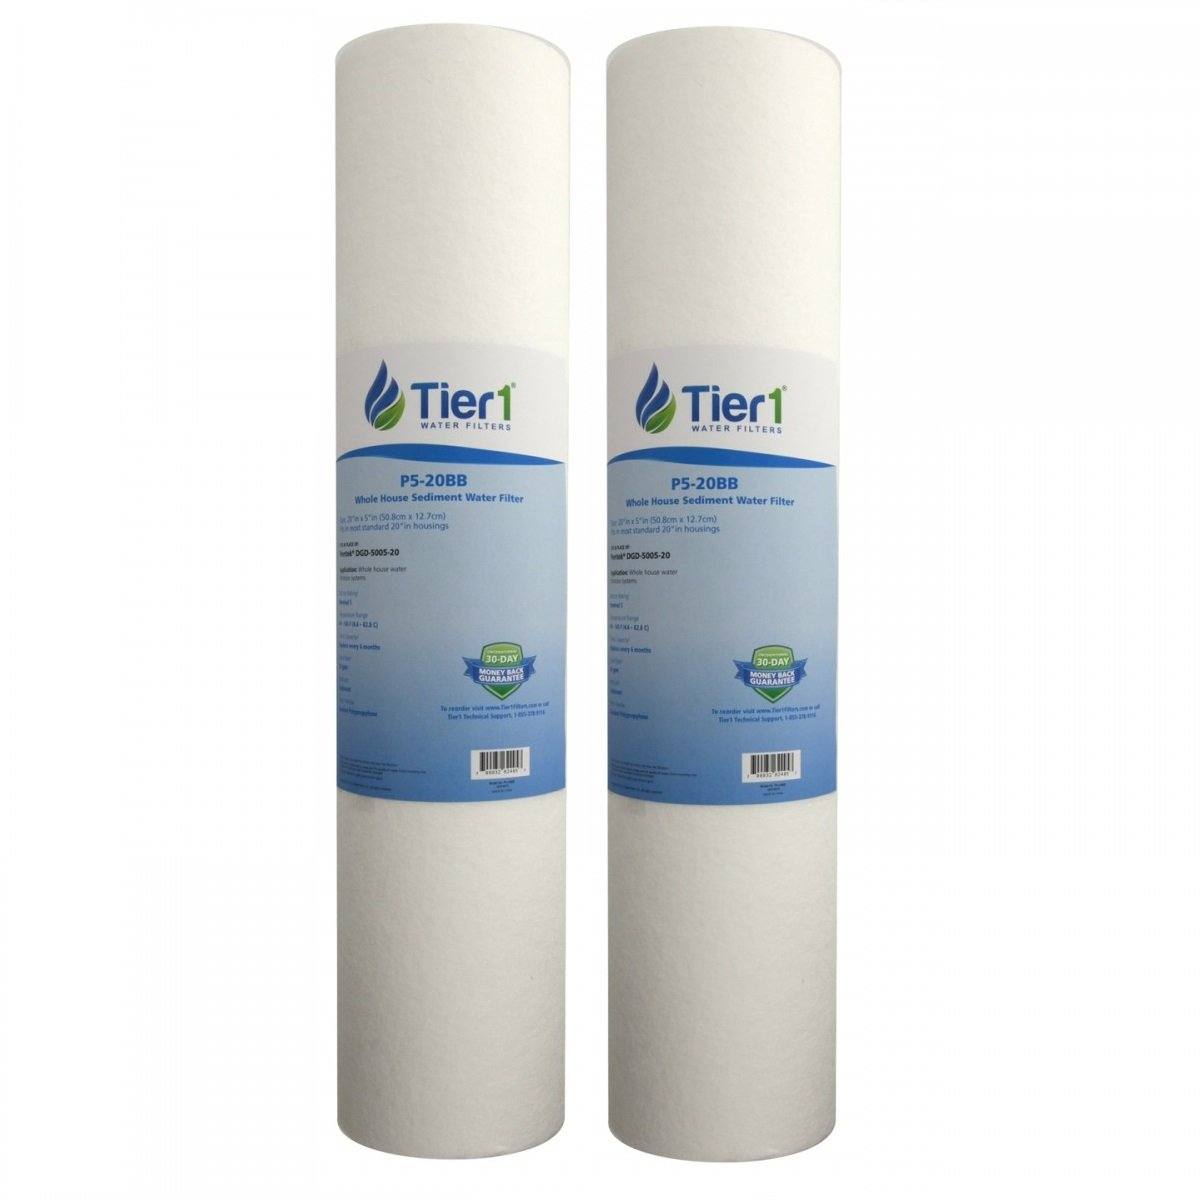 Whole House Sediment Water Filter Amazoncom Tier1 Dgd 5005 20 5 Micron 20 X 45 Spun Wound